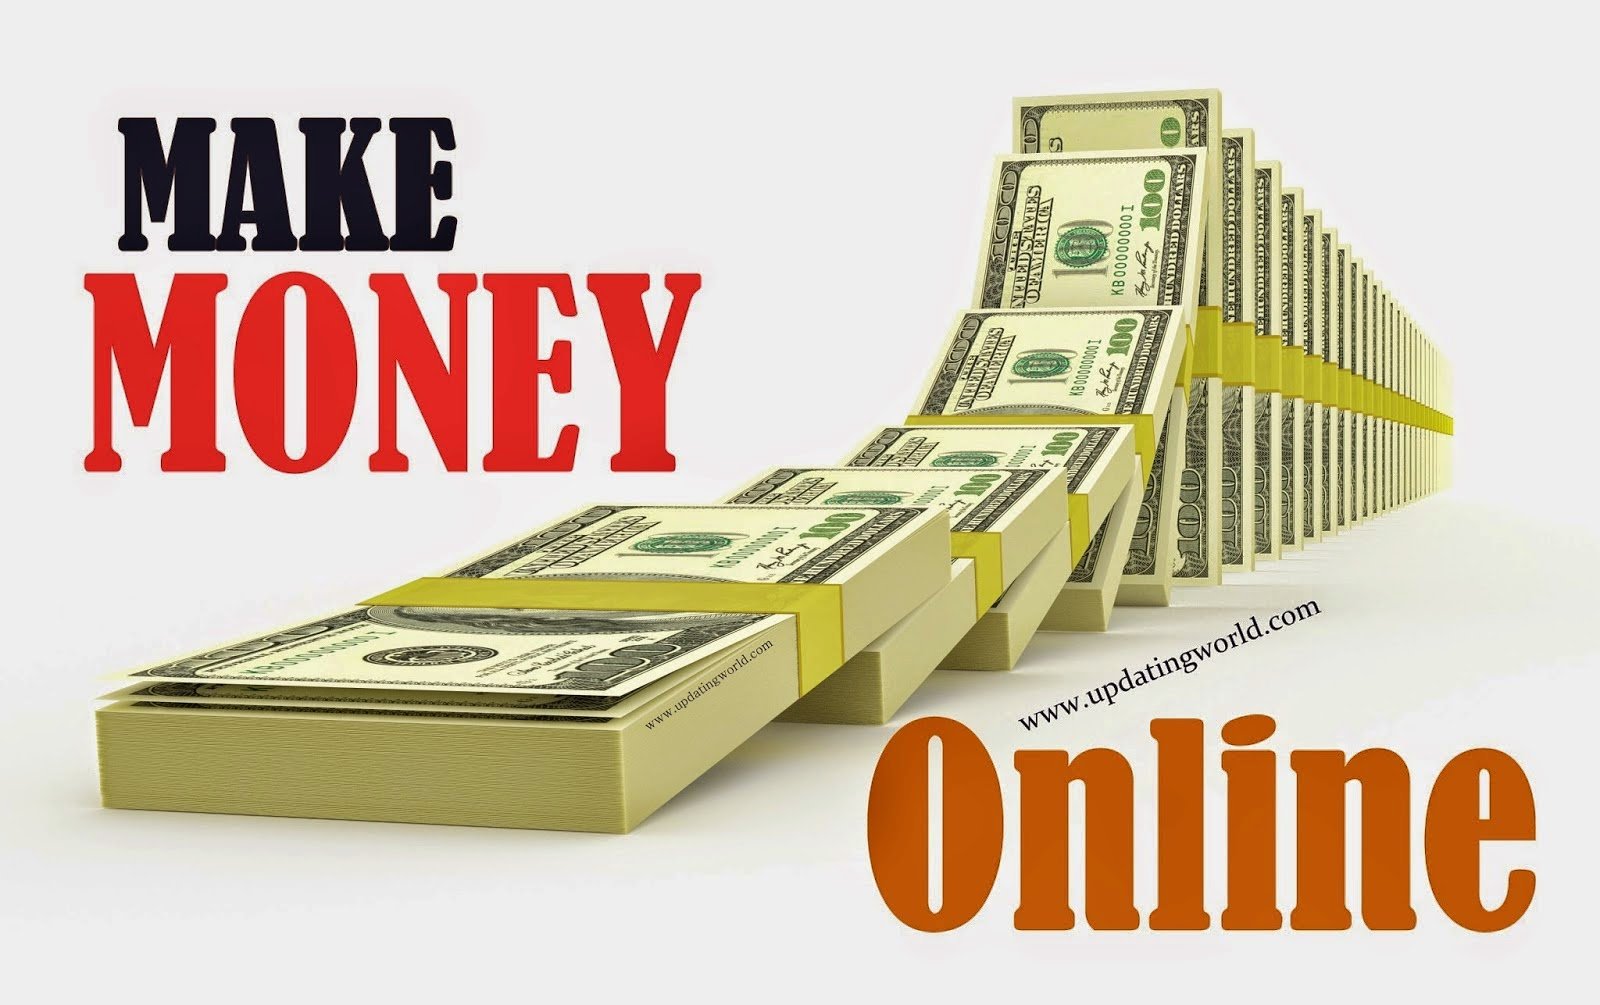 Follow These Instructions To Receive Free Money Without Doing Anything You Are Able Cash Out At